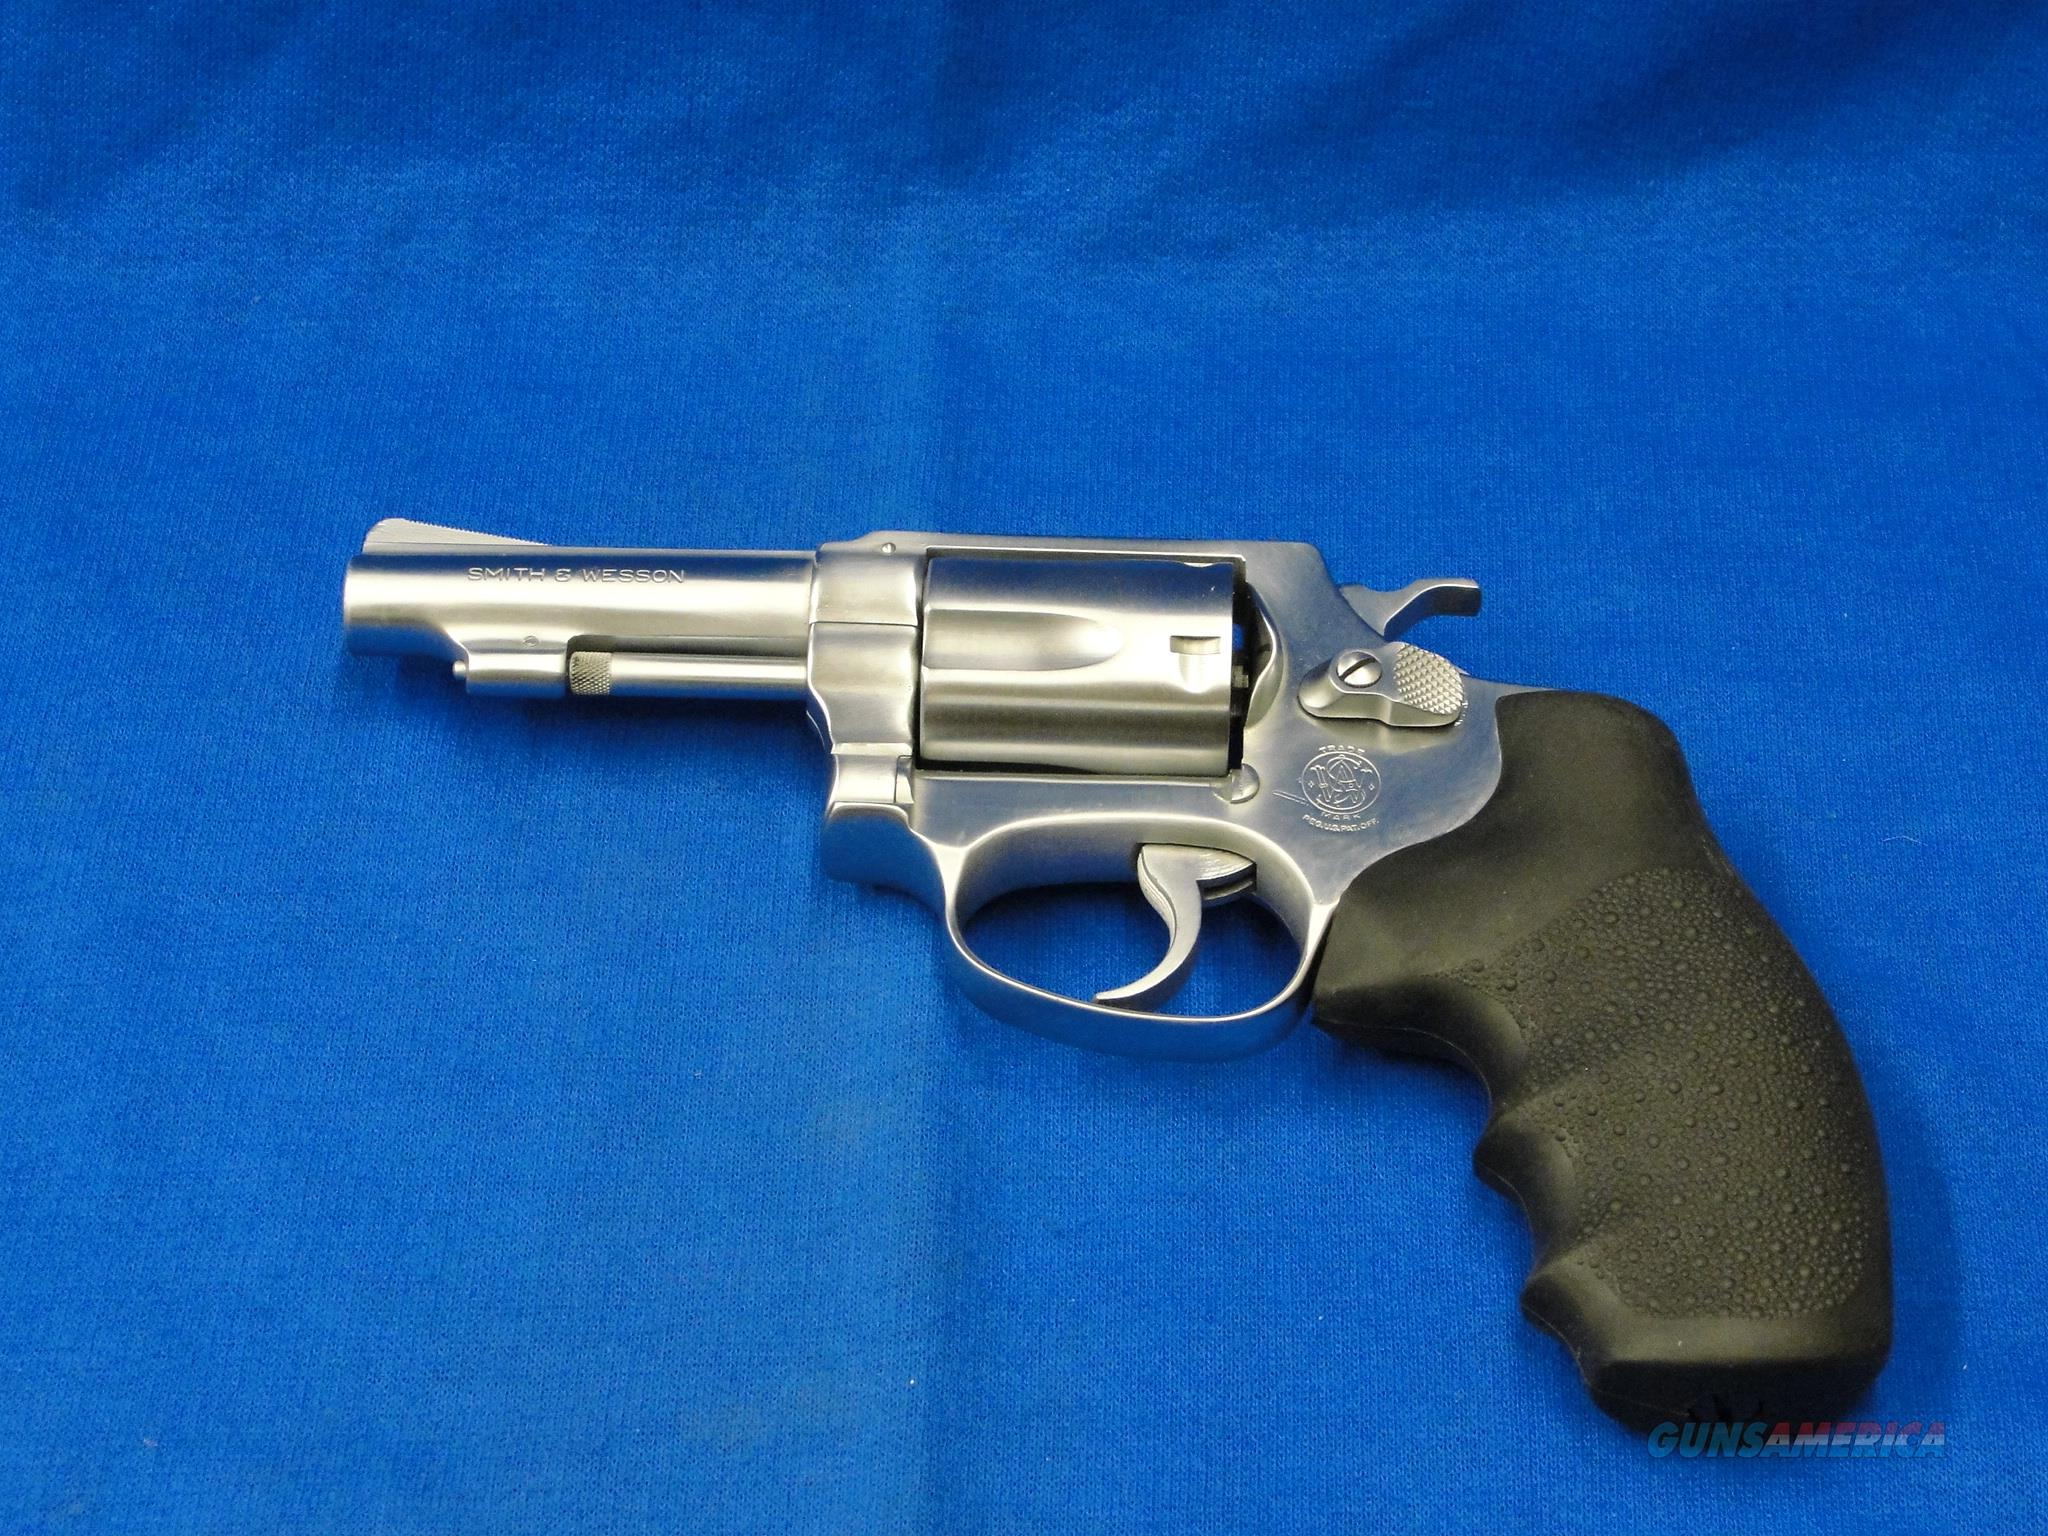 Cogan Custom Smith and Wesson 36  Guns > Pistols > Smith & Wesson Revolvers > Pocket Pistols